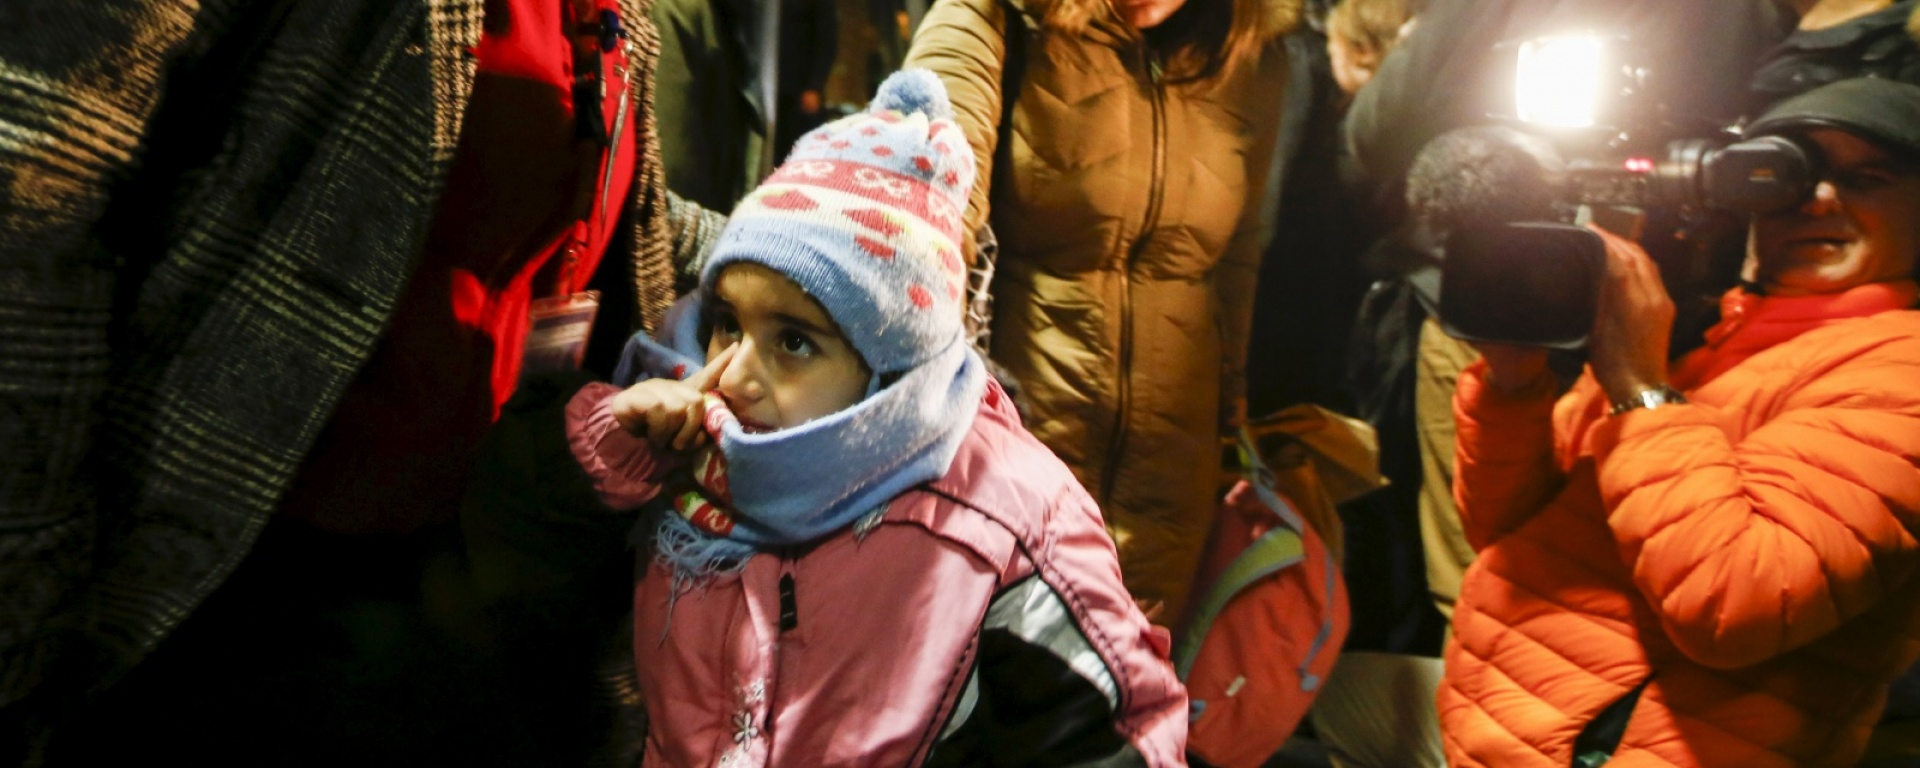 Syrian refugees arriving in Ontario / CNS photo